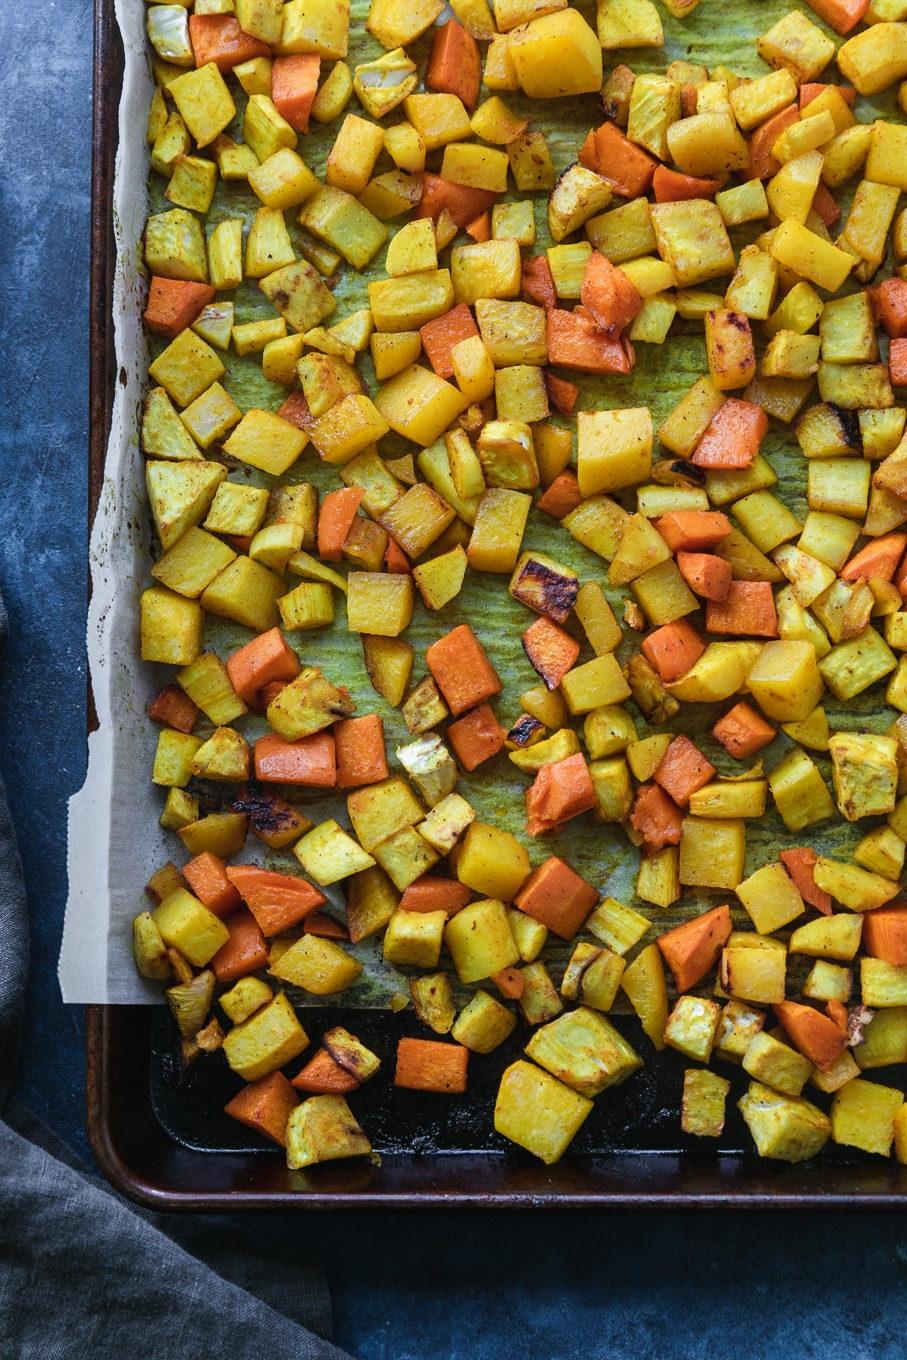 Overhead shot of a sheet pan filled with roasted yellow and orange root vegetables